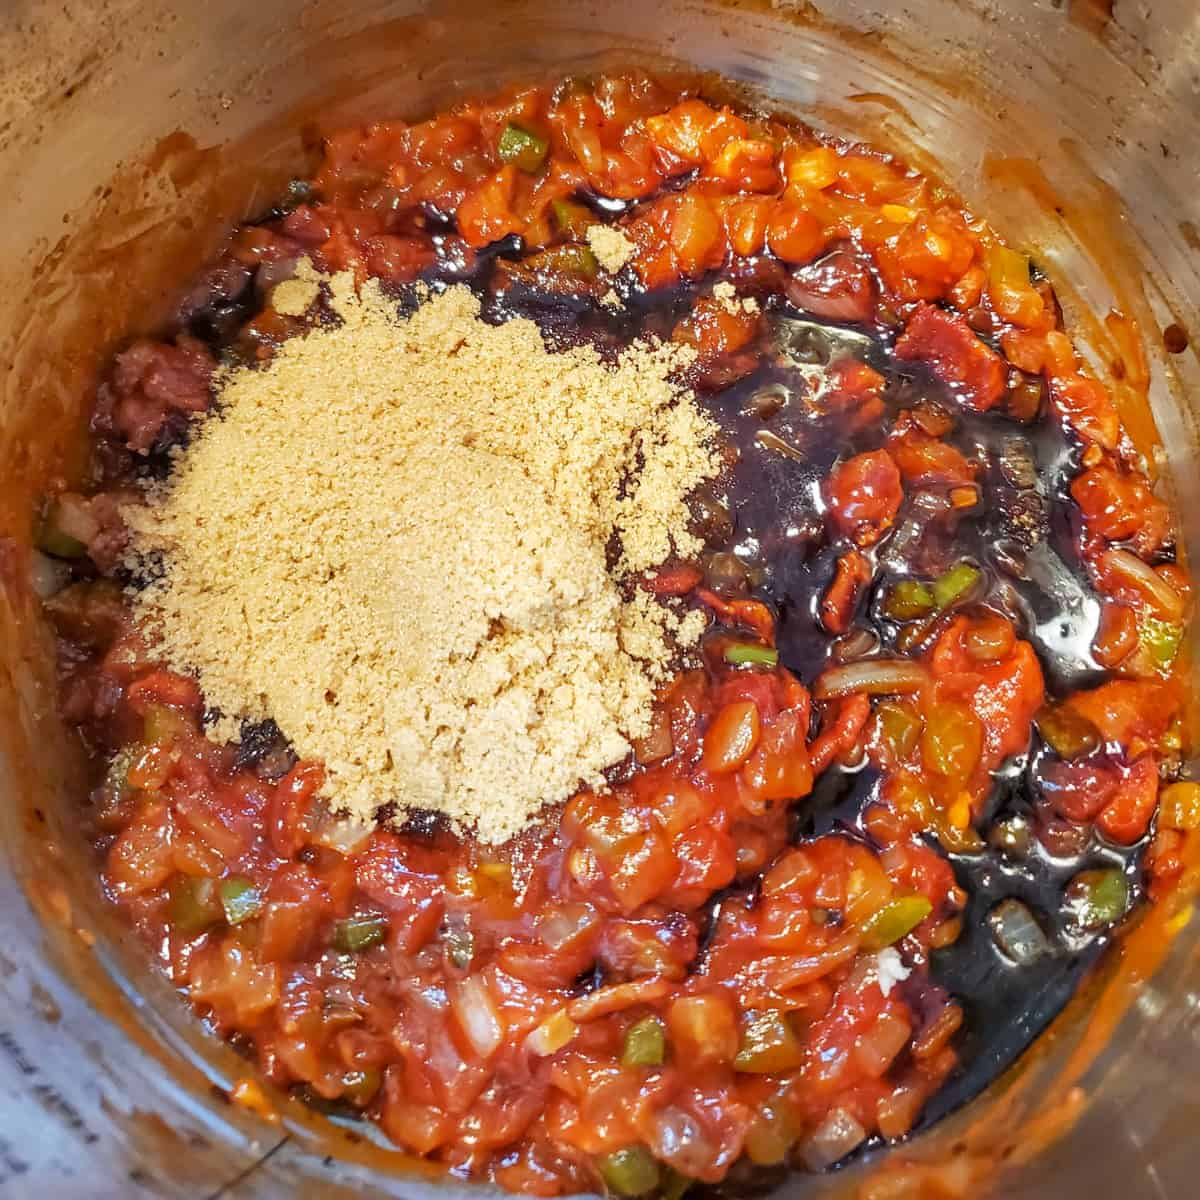 Cooked bacon and veggies in the Instant Pot with the ingredients for the sauce added and ready to stir in.